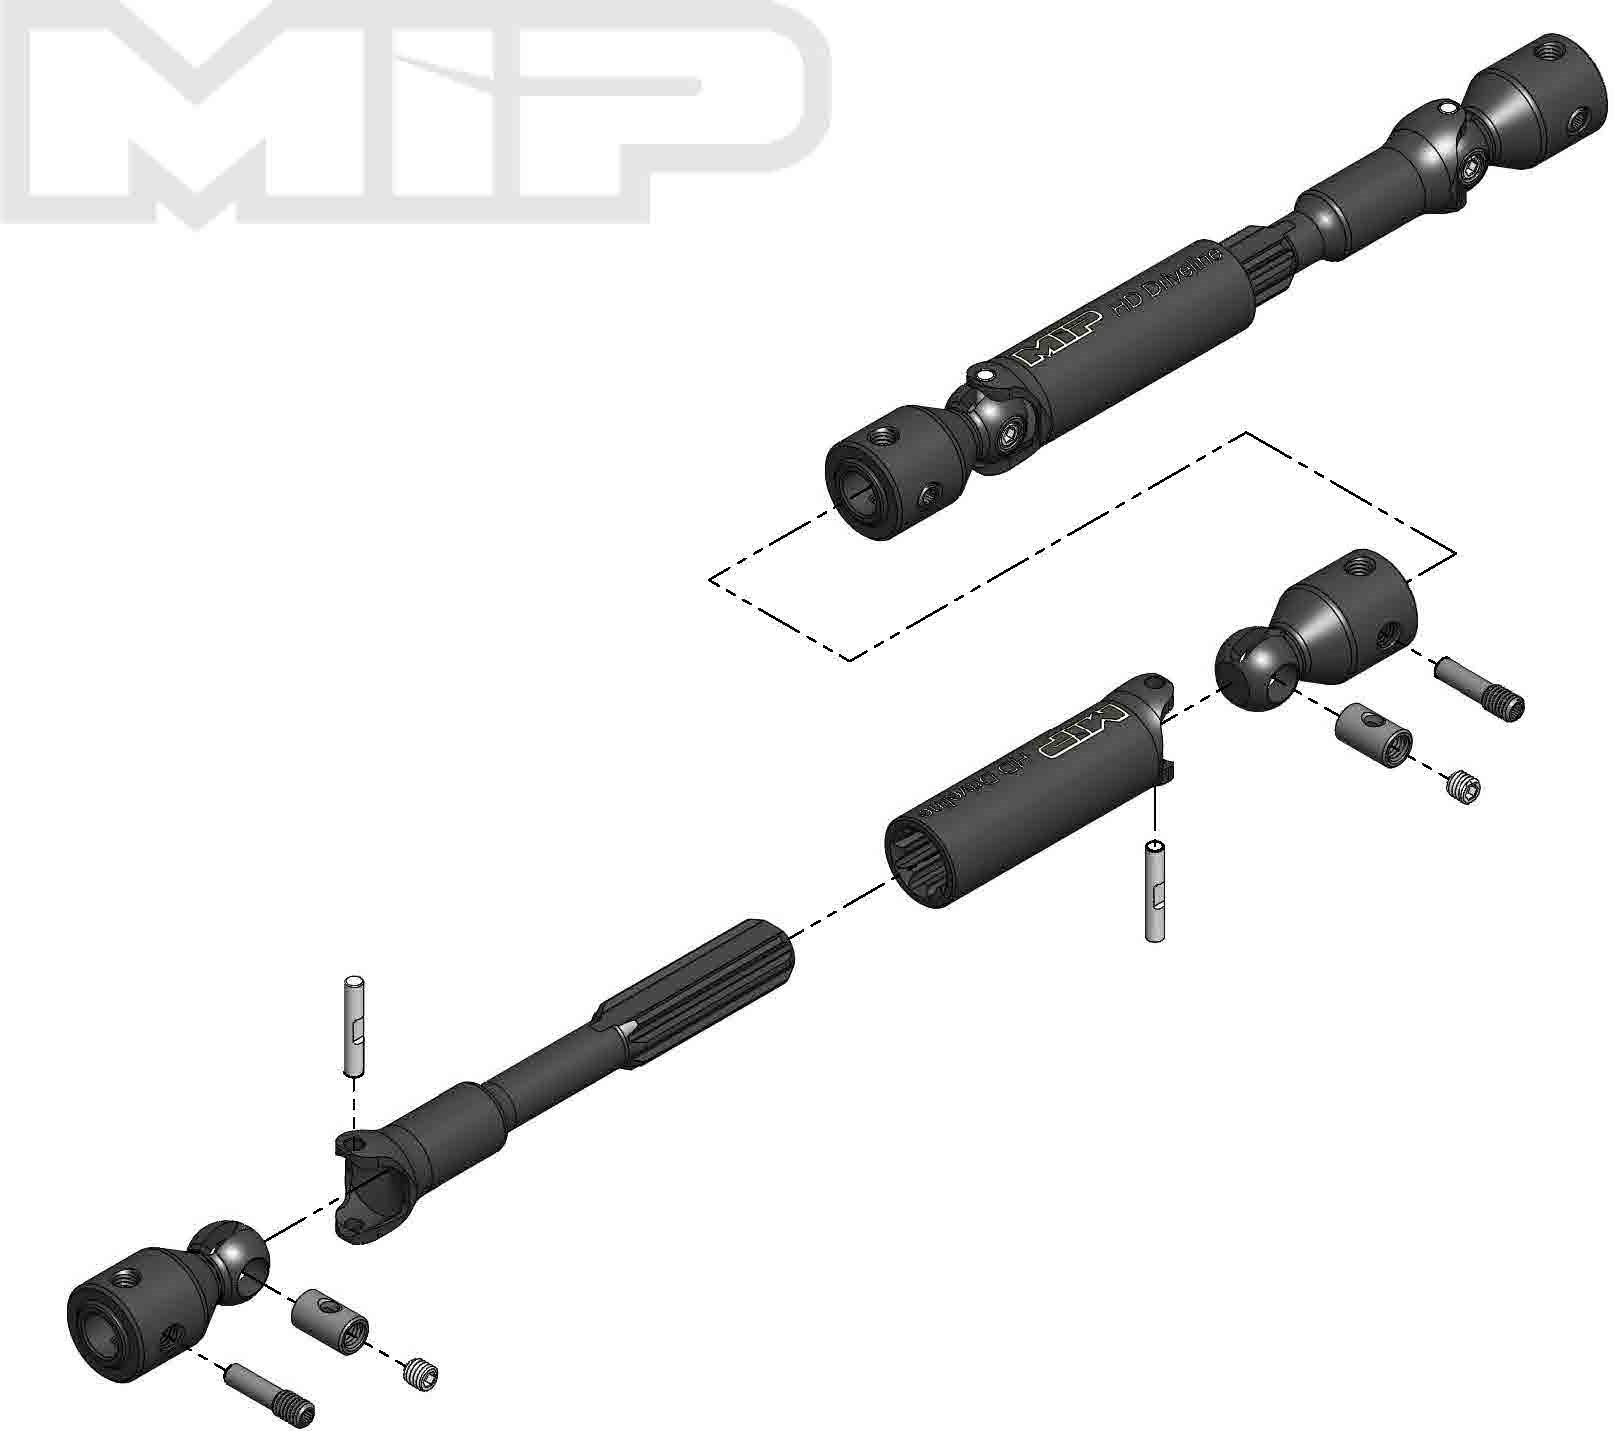 More\'s Ideal Products Hd Driveline Kit, Traxxas Trx-4 Bronco